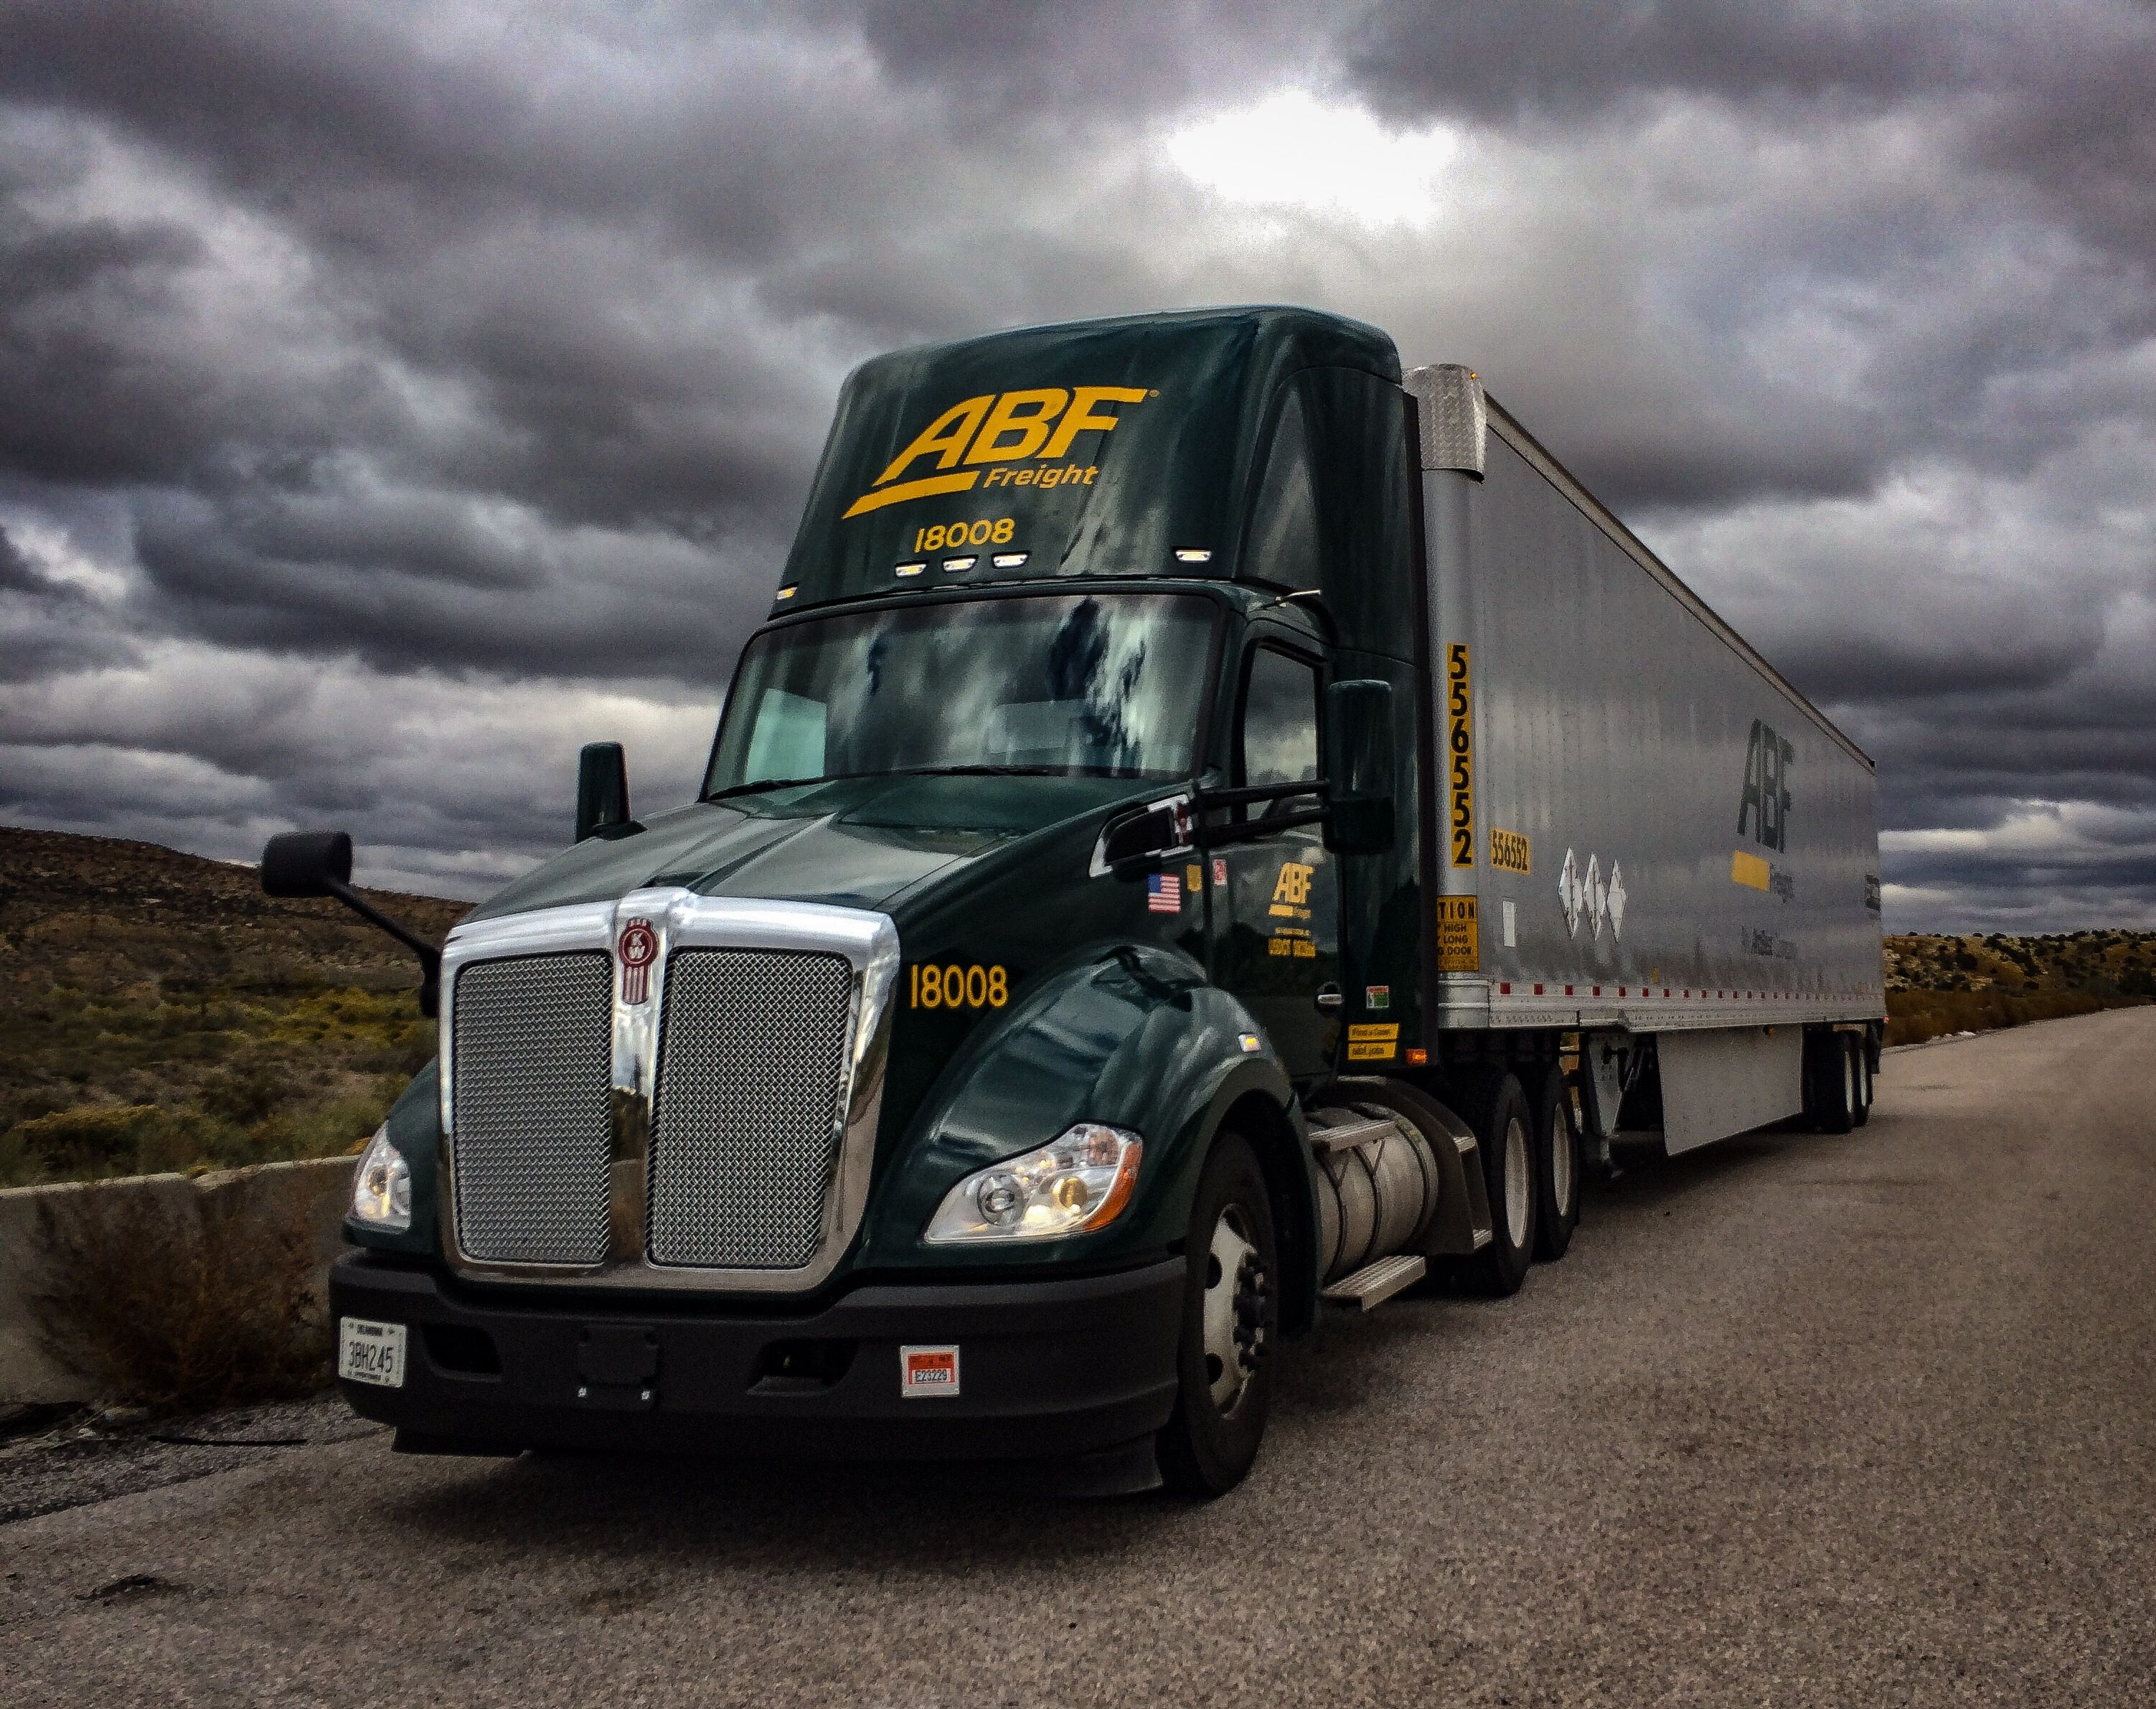 ABF Freight Kenworth, taken at the New Mexico/Arizona line on Interstate 40... Photo by George Stokes